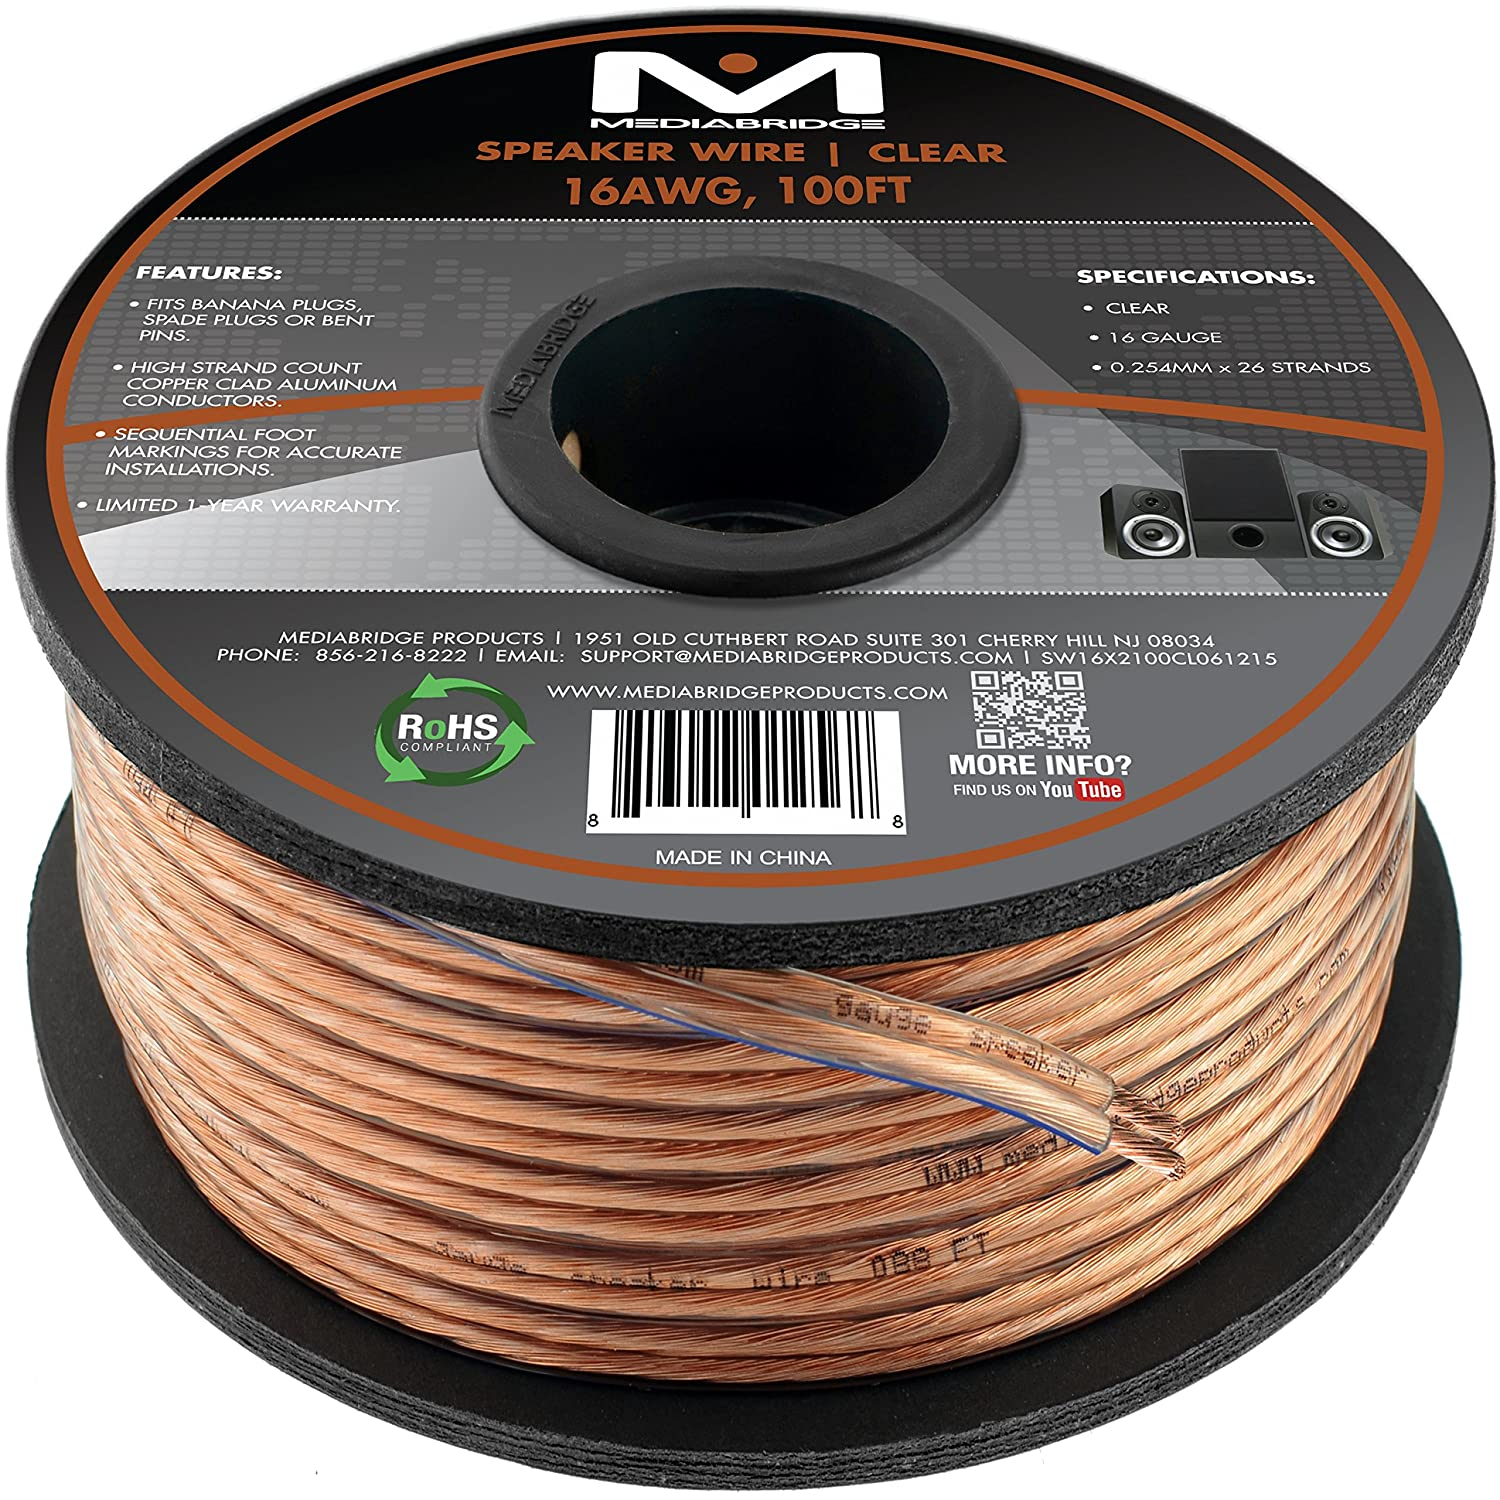 Amazon mediabridge 16awg 2 conductor speaker wire 100 feet amazon mediabridge 16awg 2 conductor speaker wire 100 feet clear spooled design with sequential foot markings part sw 16x2 100 cl electronics greentooth